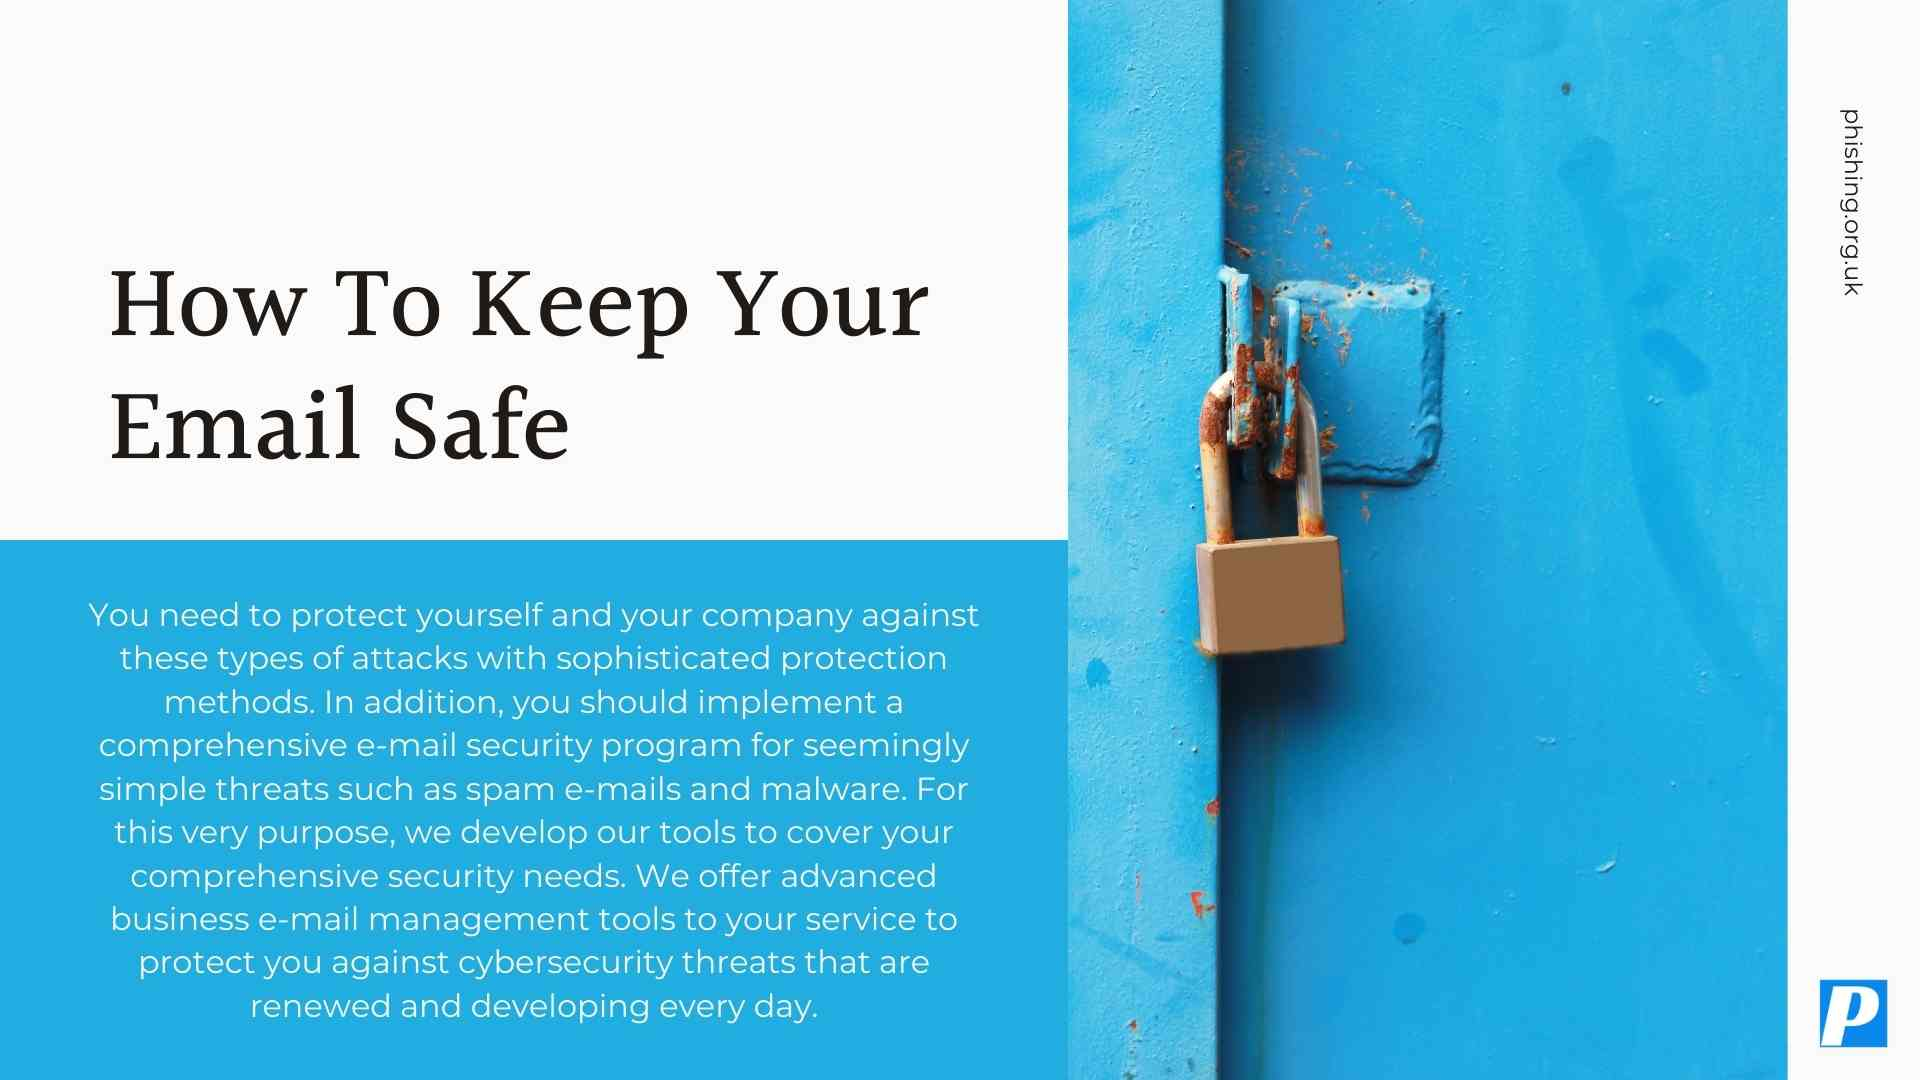 How To Keep Your Email Safe Against Increasing Attacks